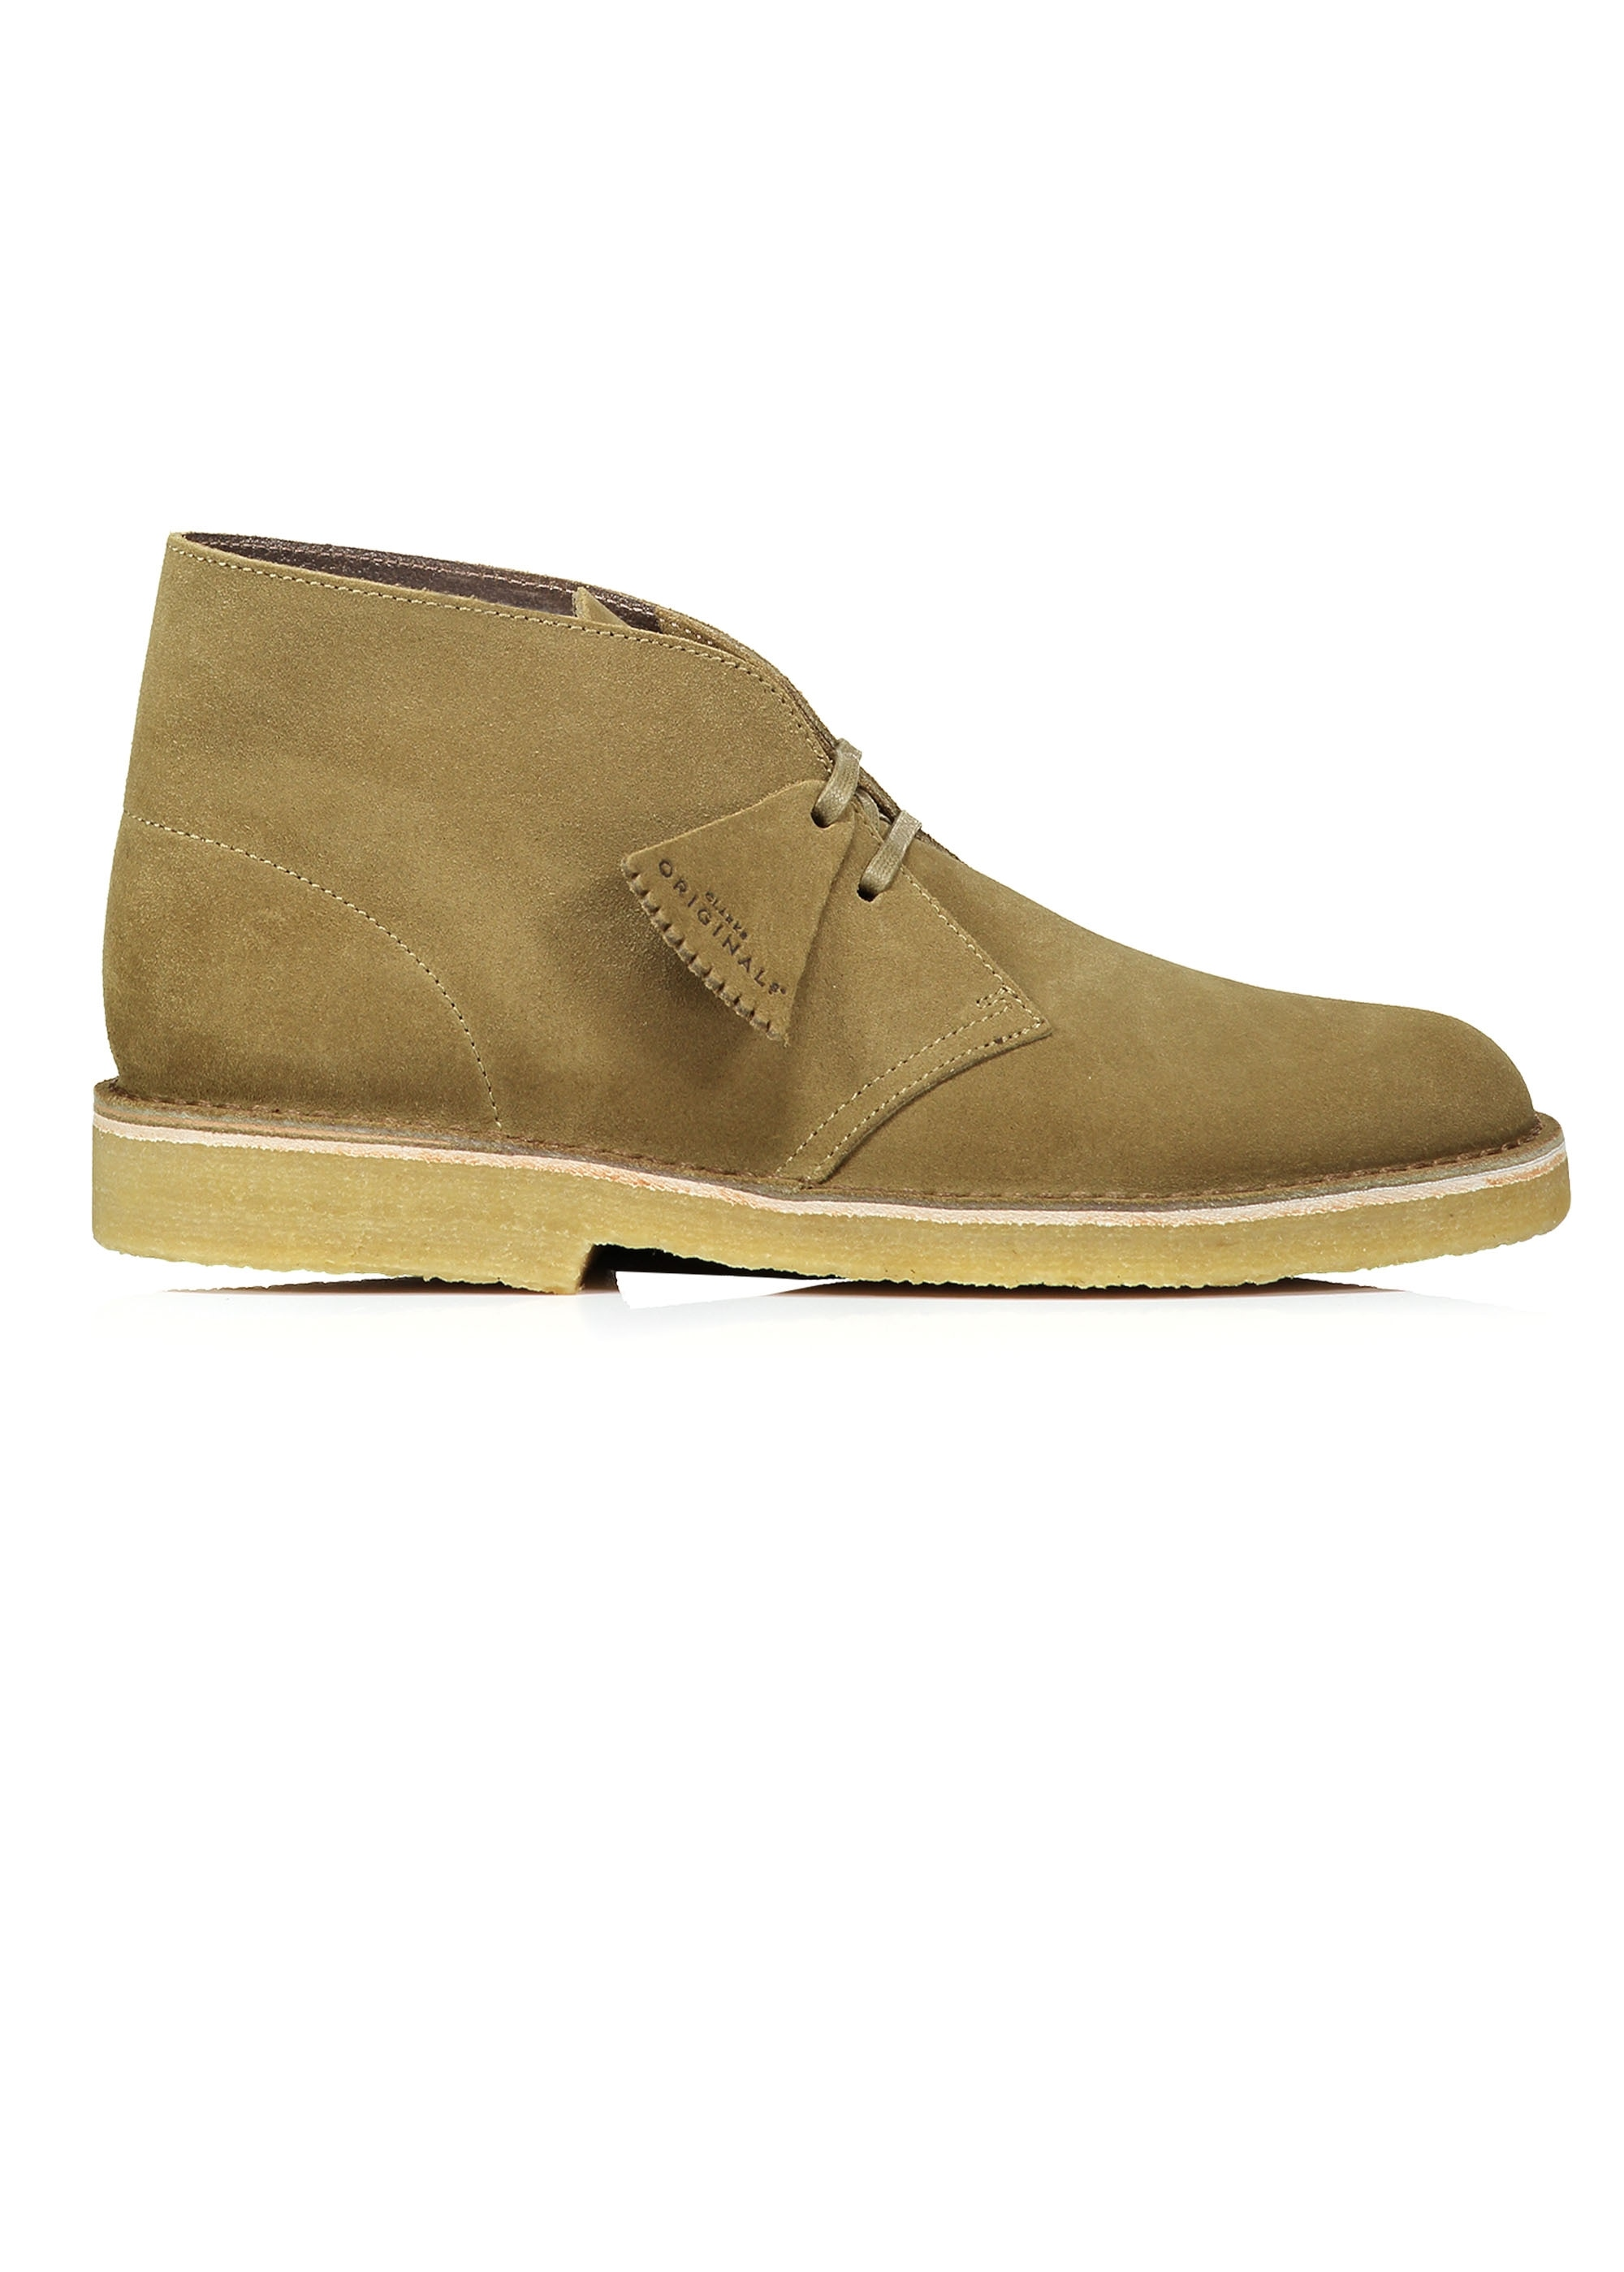 Boot Mens Uk Clarks Desert From Olive Originals Triads Suede qOBpxBEvw